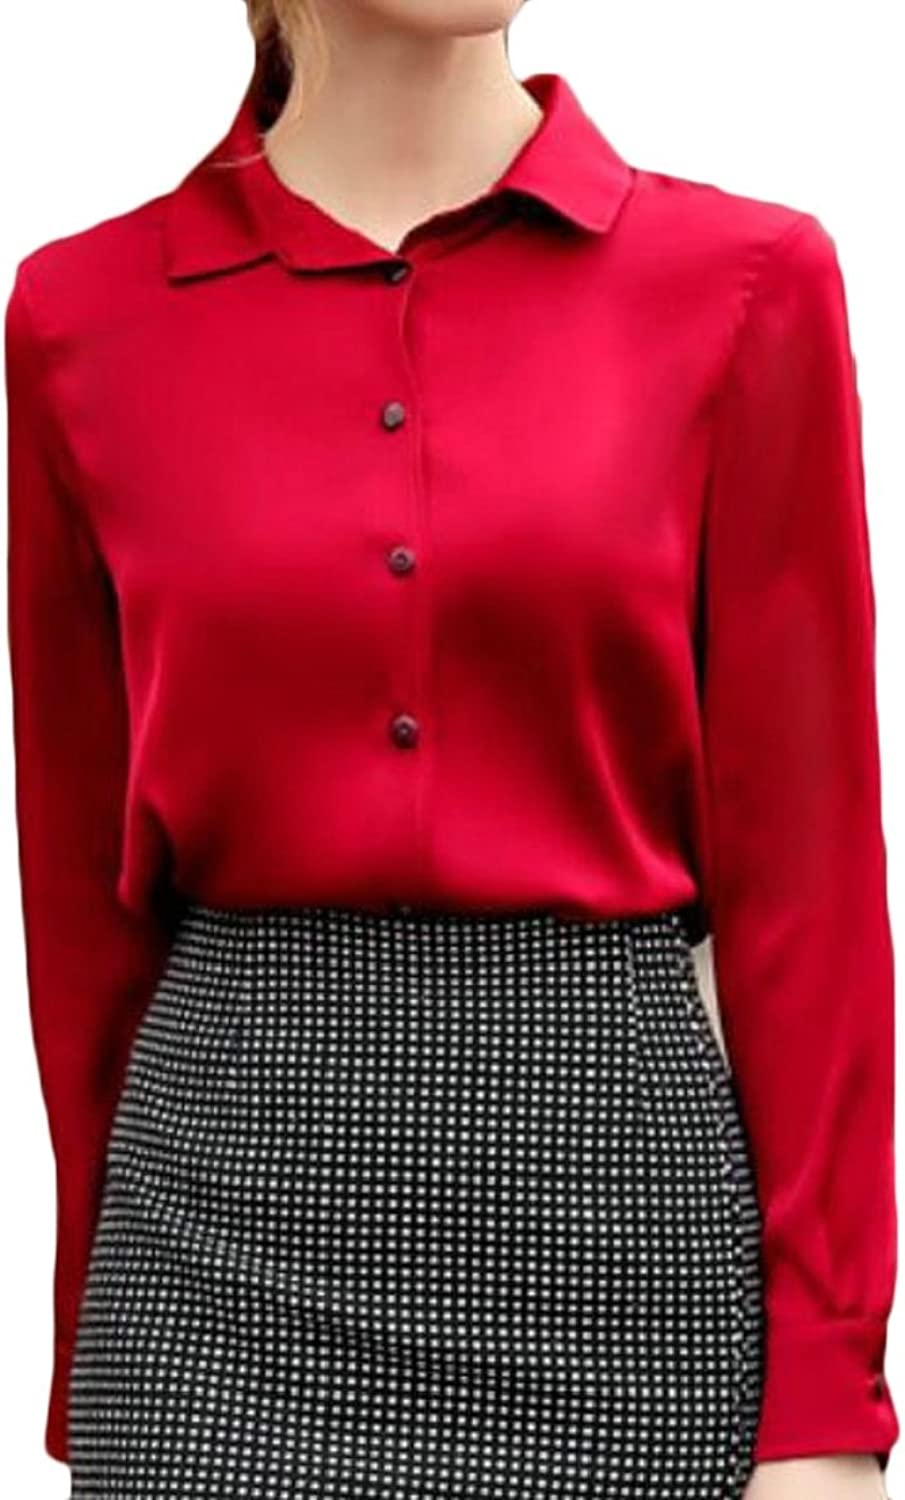 Generic Womens Fashion Long Sleeve Satin Blouse Button Down Shirts with Cuffs